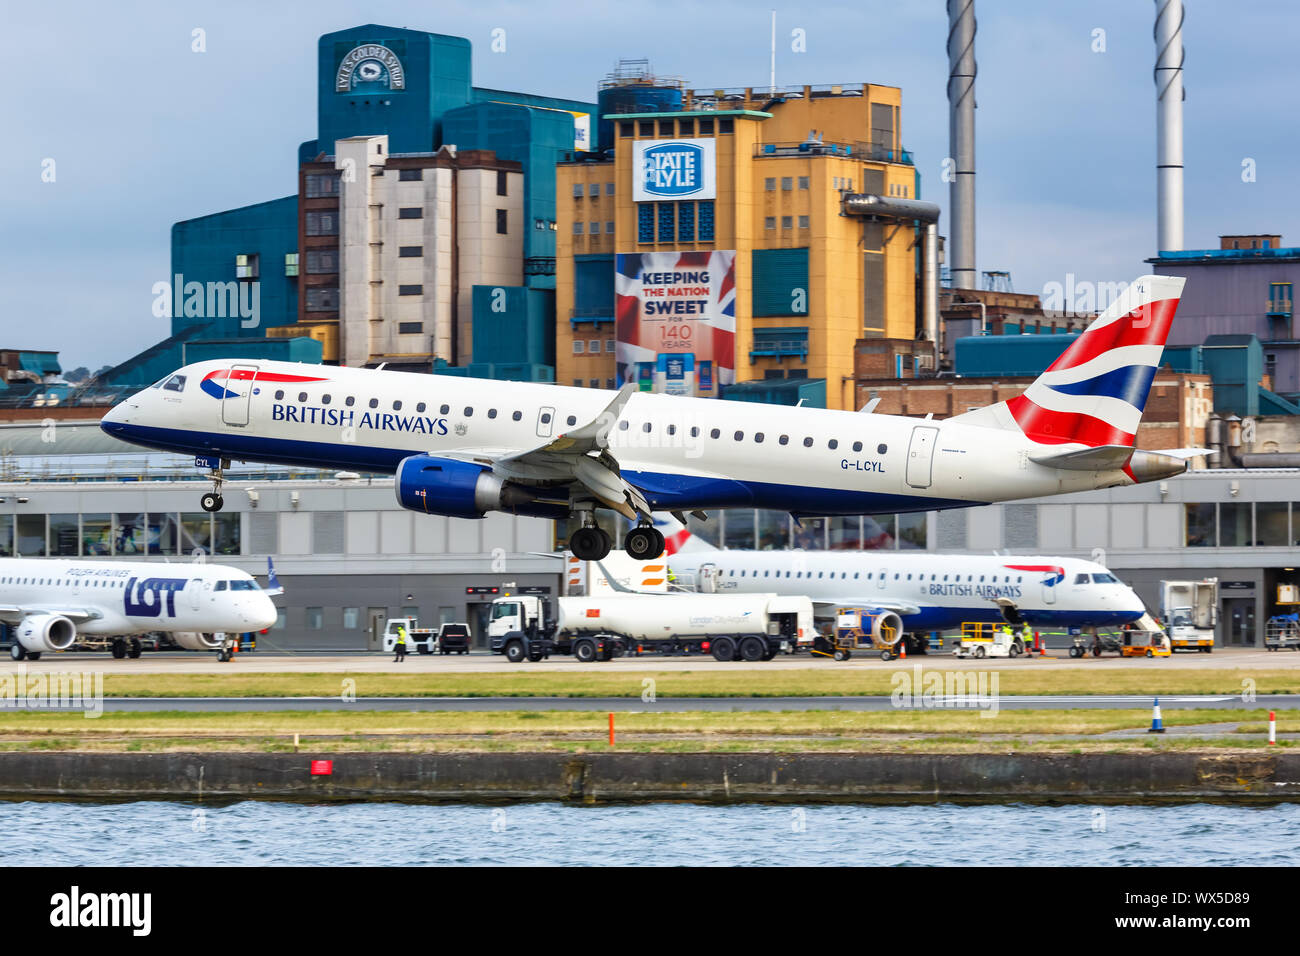 London, United Kingdom – July 7, 2019: British Airways BA CityFlyer Embraer 190 airplane at London City Airport (LCY) in the United Kingdom. Stock Photo